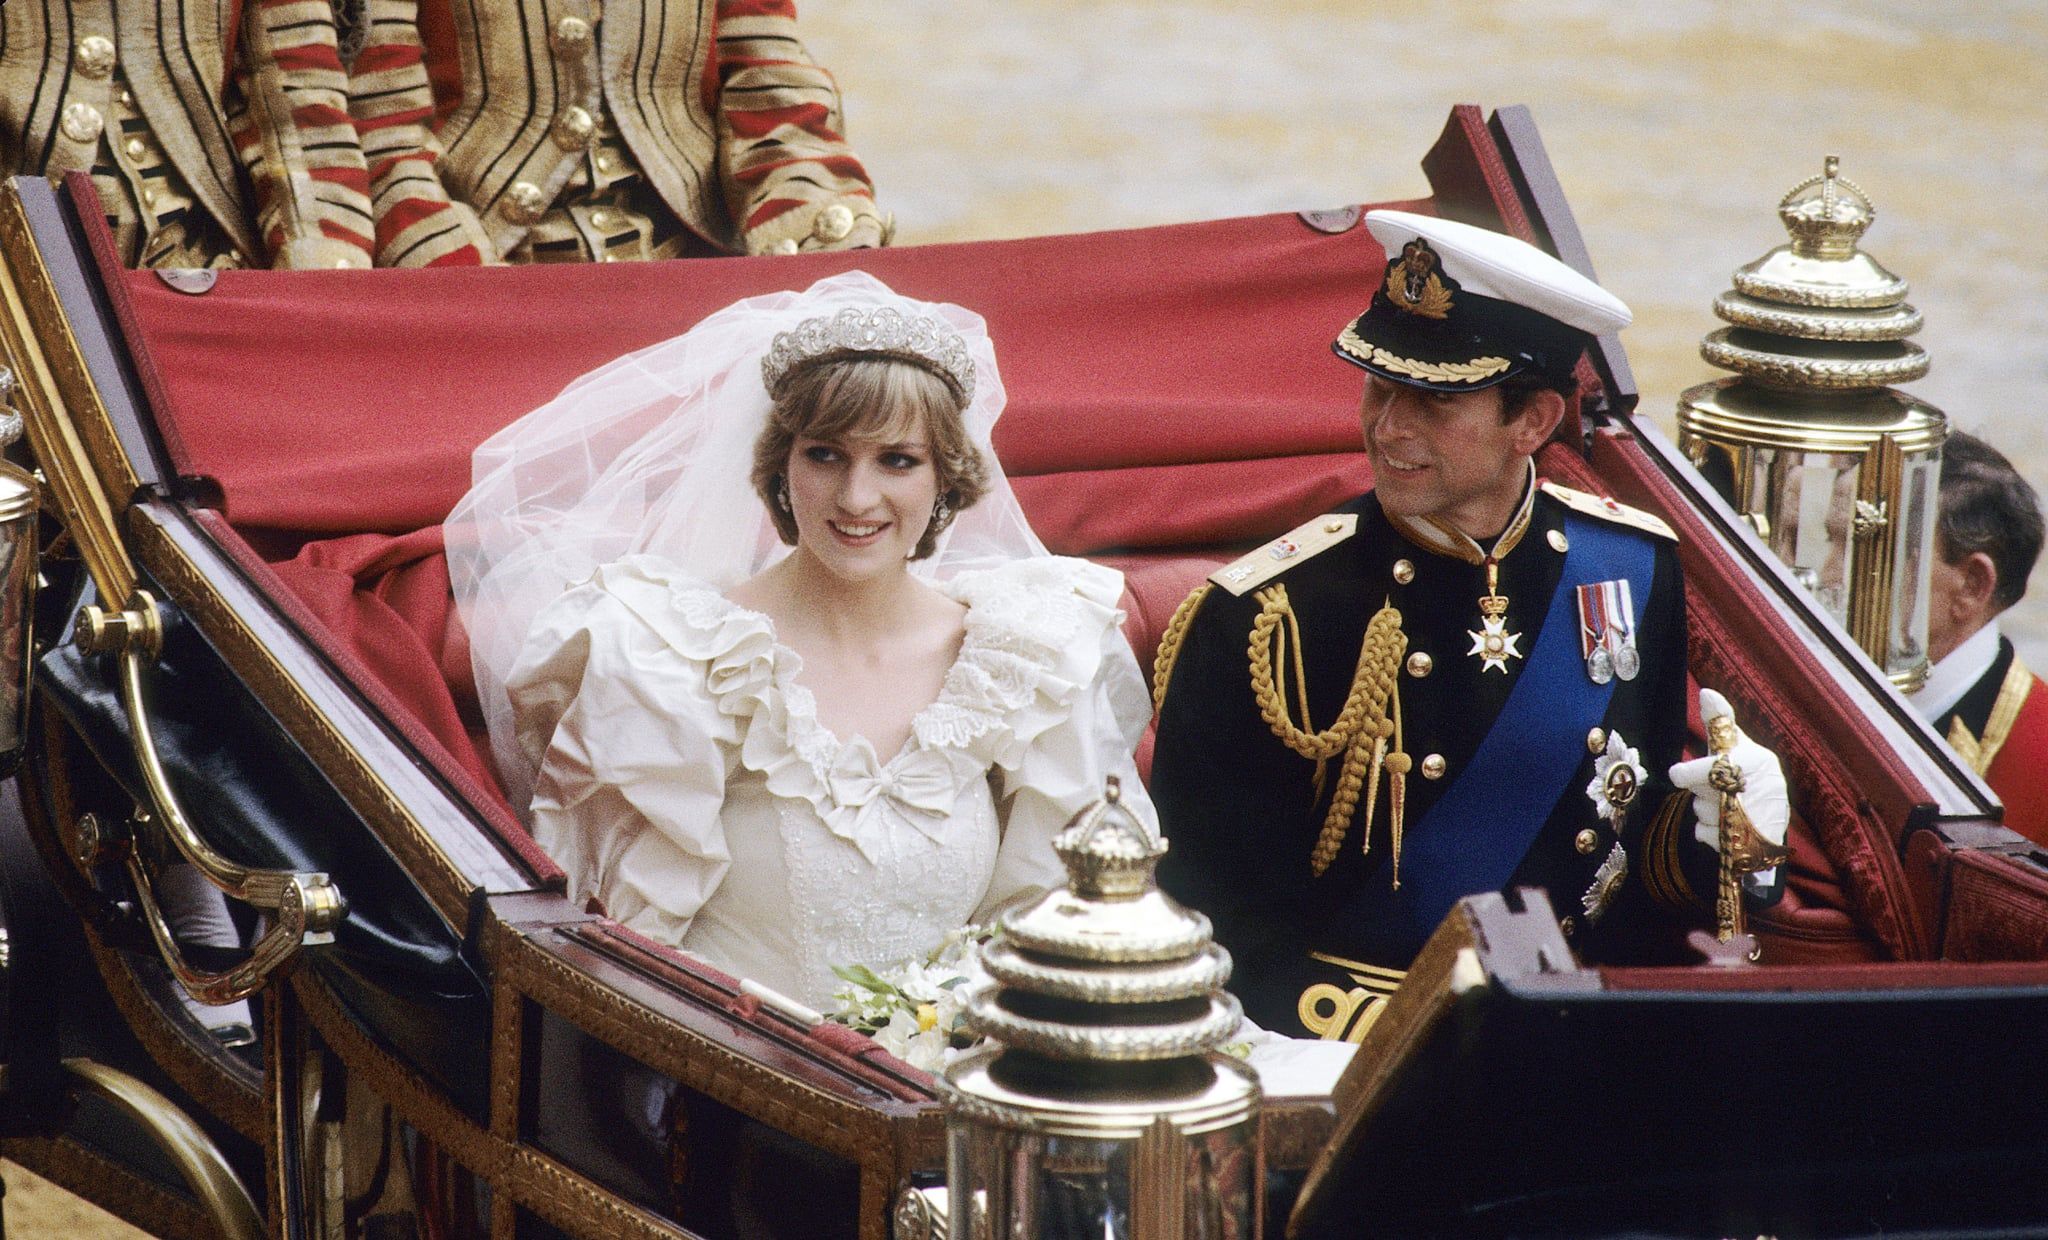 How Old Was Diana When She Married Prince Charles